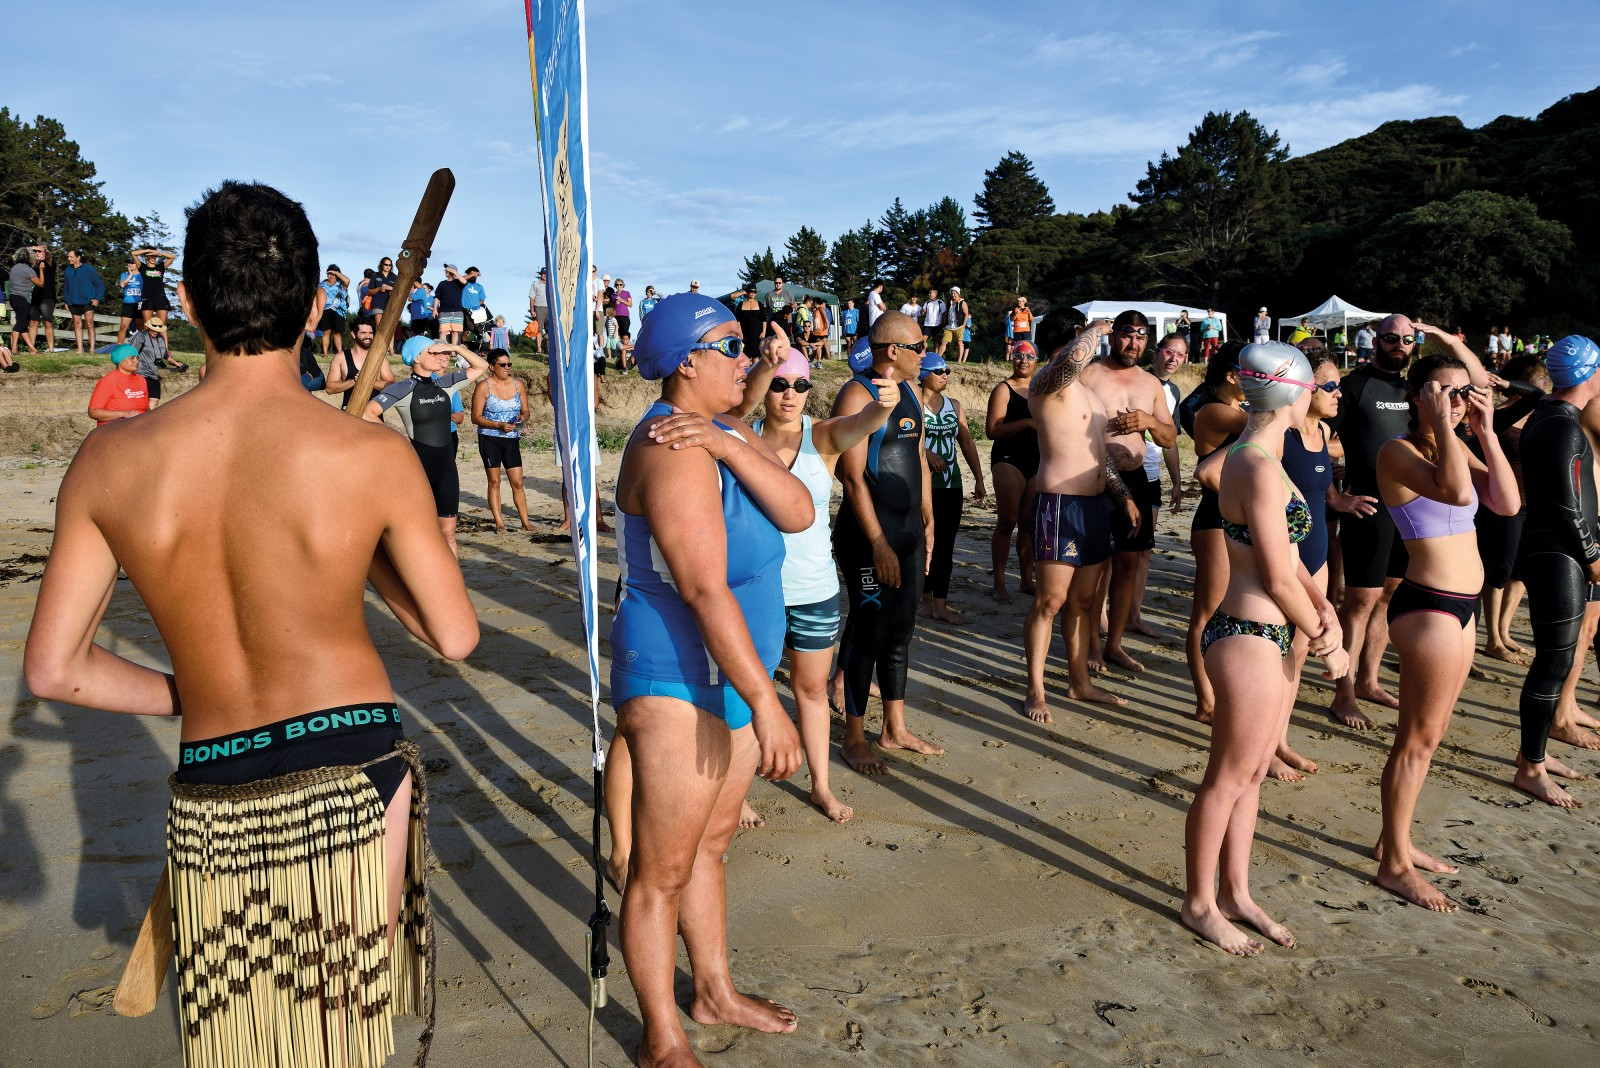 Multisport has come to Whangaroa in the form of the Iron Mahue, a one-kilometre ocean swim followed by a 10-kilometre run (or walk, for those who prefer a slower pace). The event's name comes from local hapū Ngāti Ruamahue, and the emphasis is less on breaking records than building community spirit and promoting a healthy lifestyle. Donald Morgan (back to camera) opened proceedings with a traditional challenge, and will stand guard on the beach until the last swimmer comes out of the water.